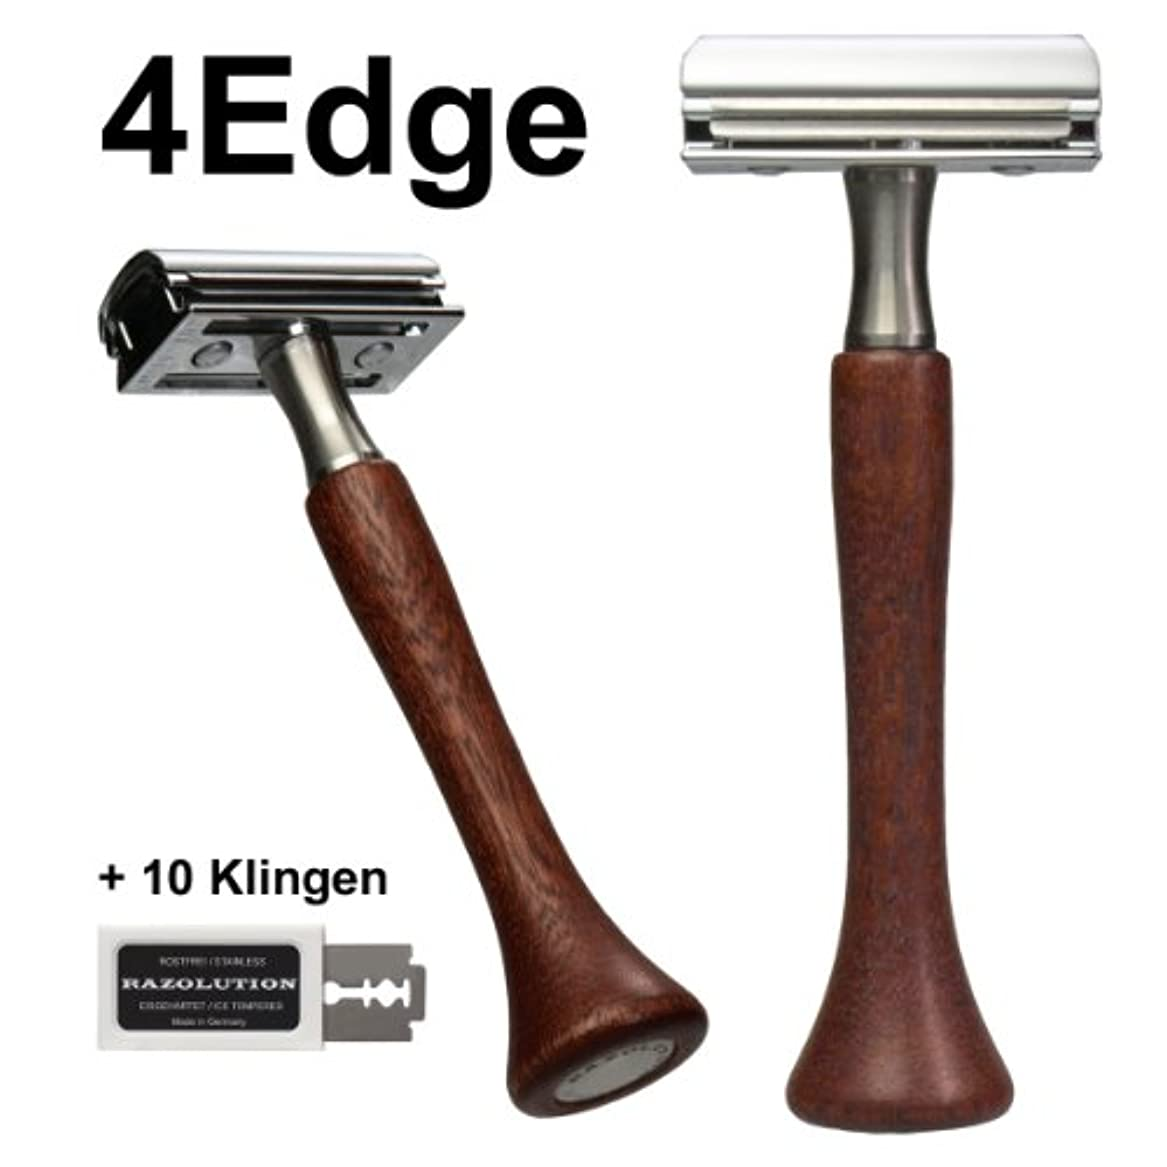 ポット蛇行フクロウRAZOLUTION 4Edge Safety razor, Mahogany handle